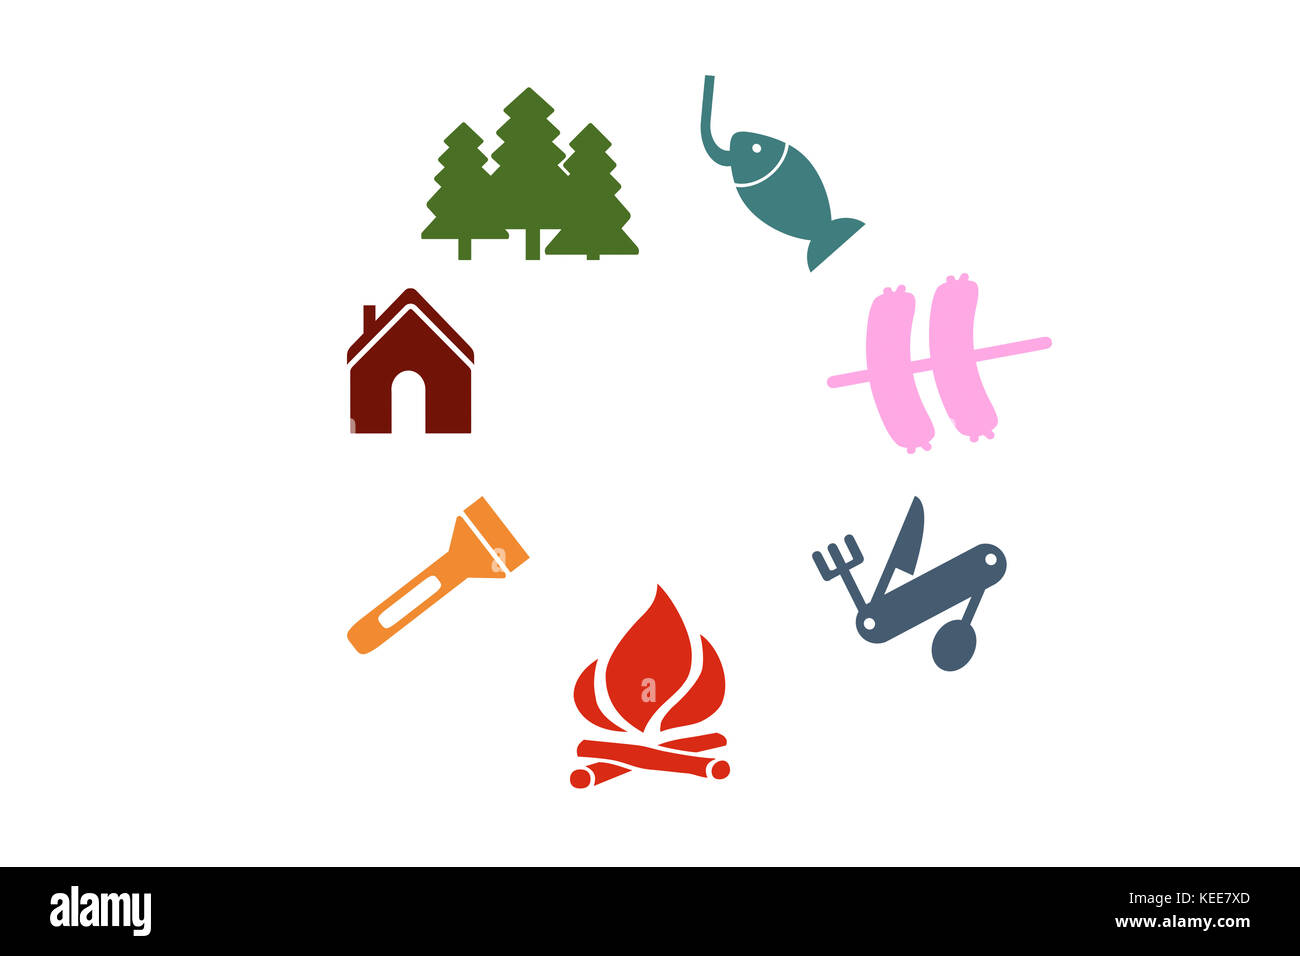 Set of colorful campground camping illustration on white background - Stock Image